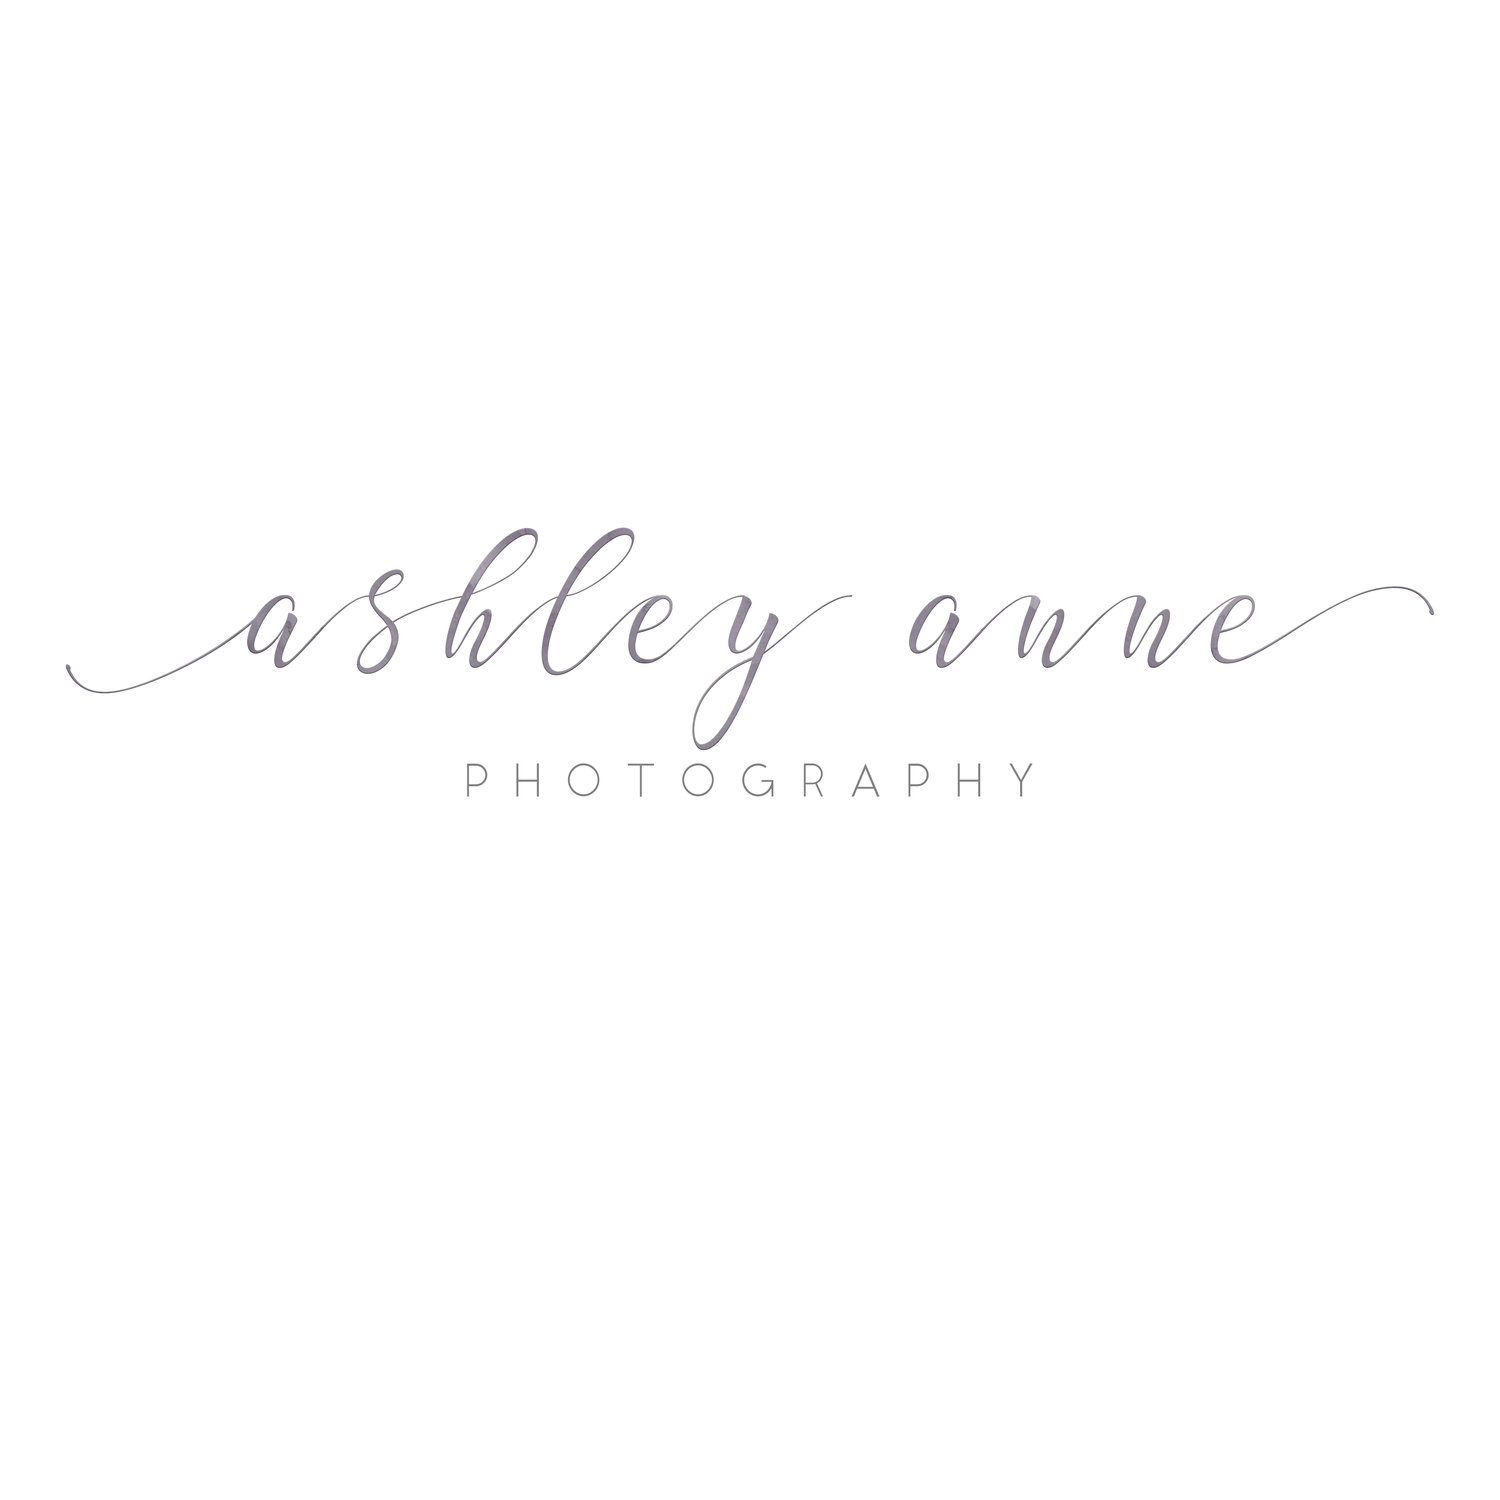 Ashley Anne Photography